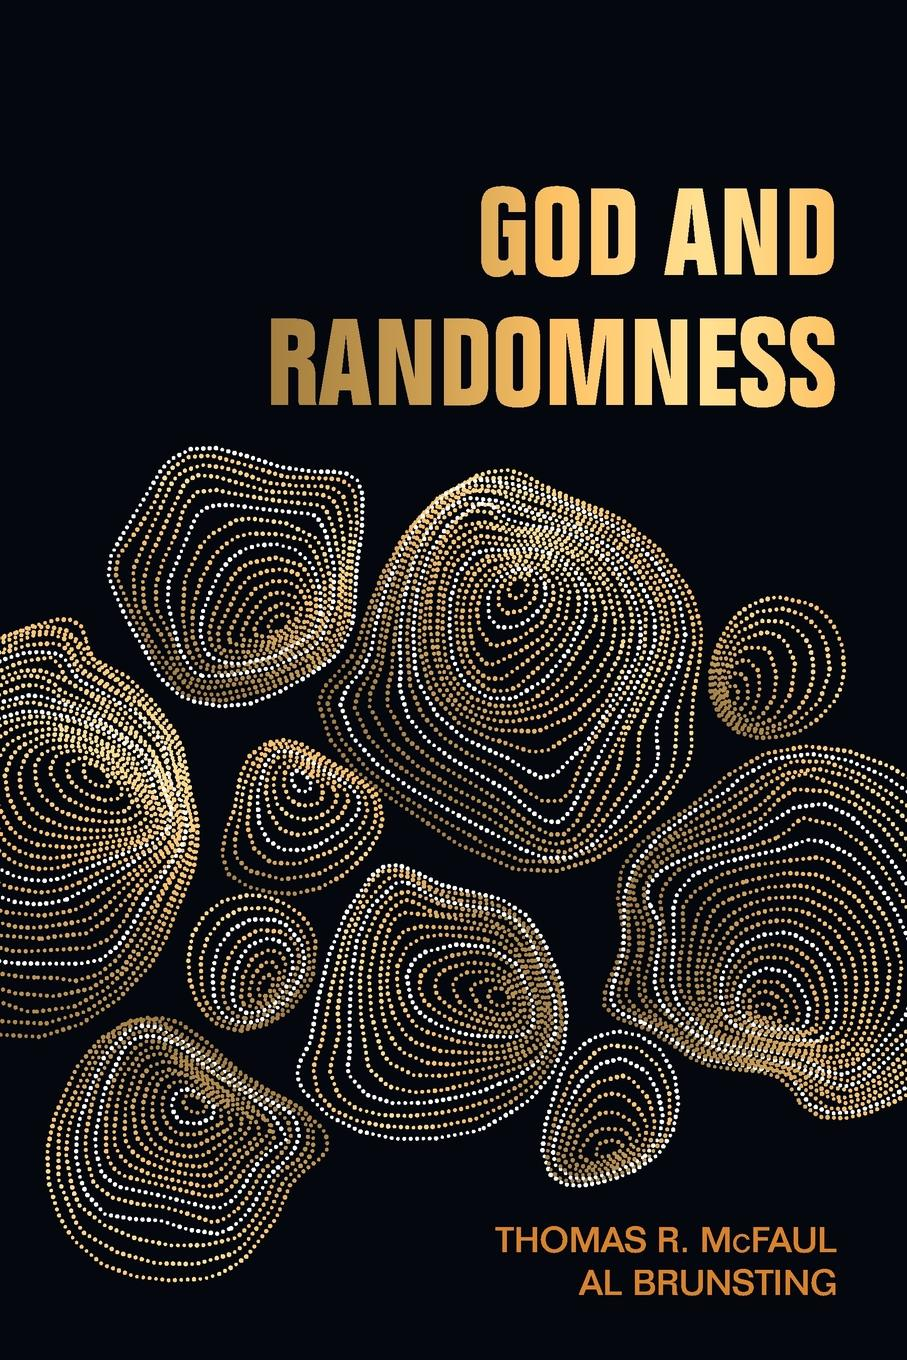 Thomas R. McFaul, Al Brunsting God and Randomness carol ochs our lives as torah finding god in our own stories